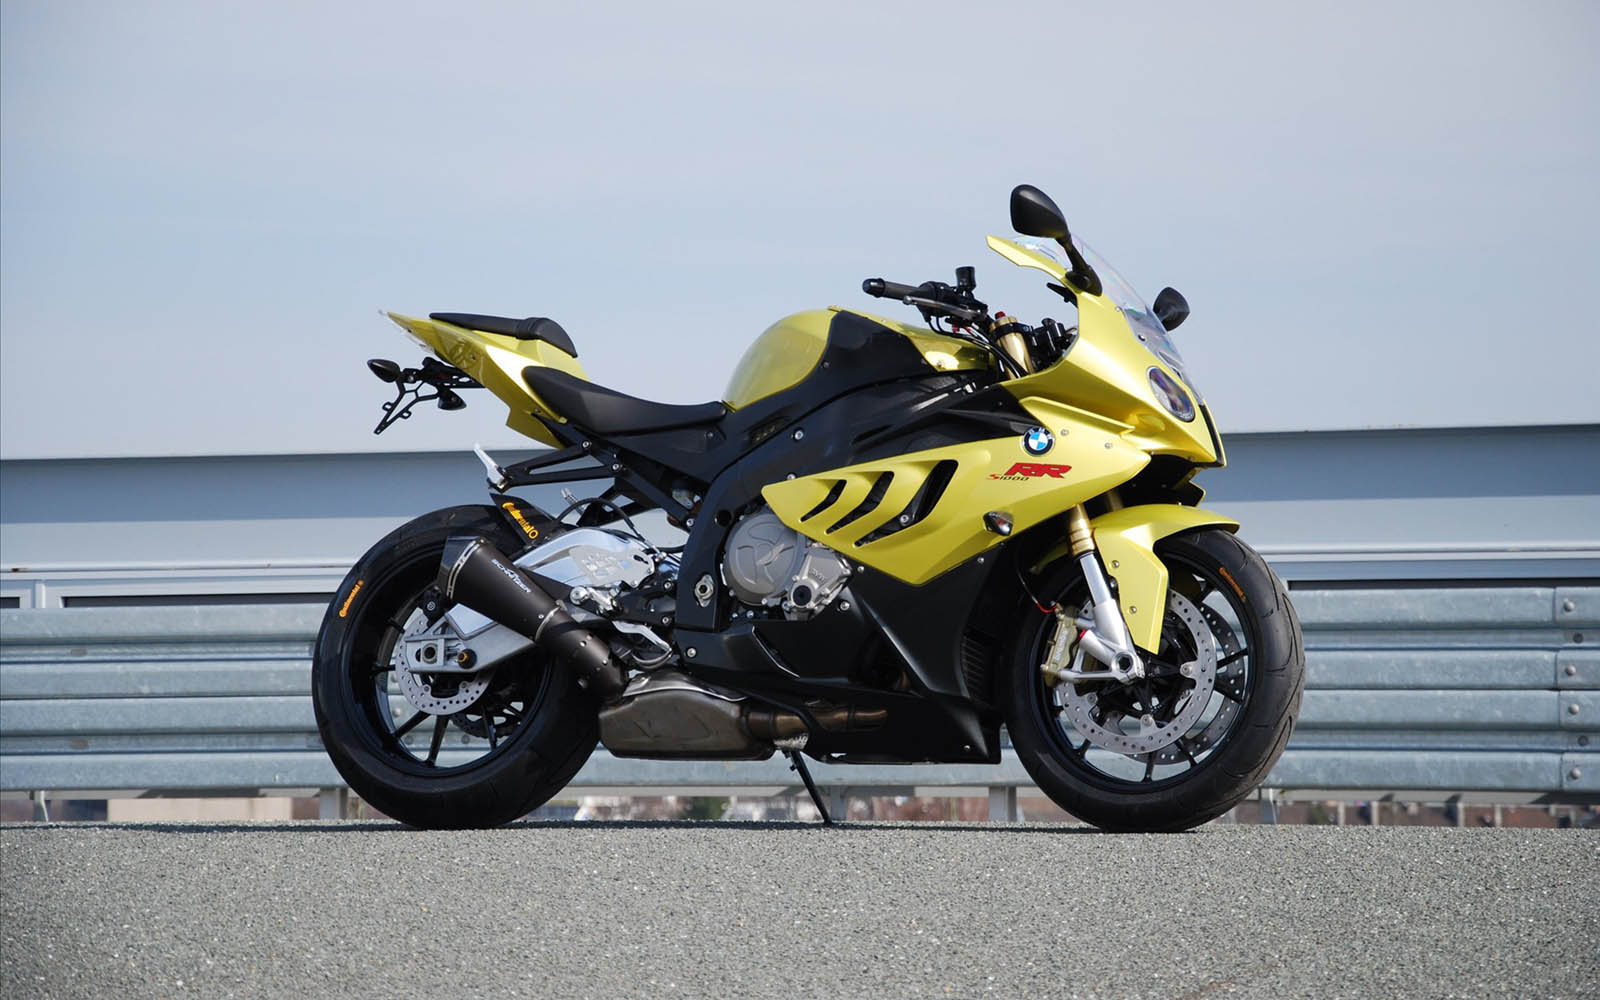 Wallpapers bmw s 1000 rr bike wallpapers for Yamaha rr 1000